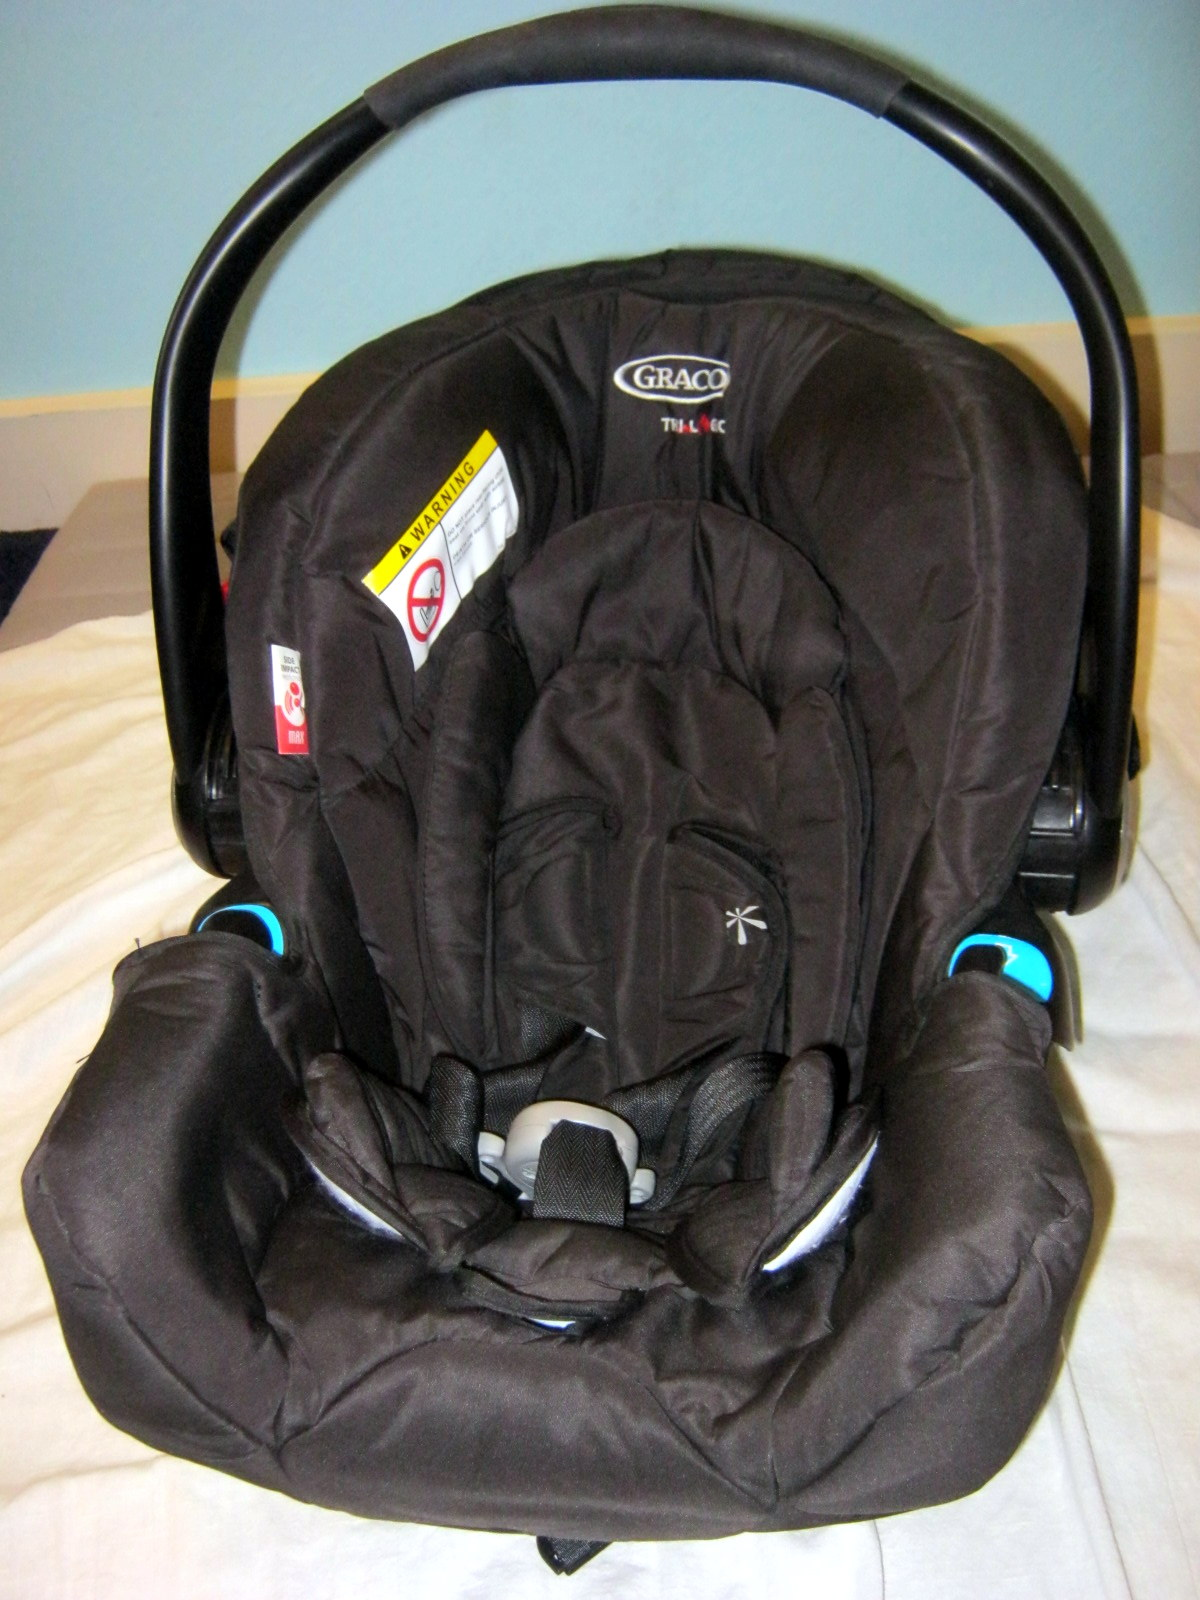 Graco car seat - front